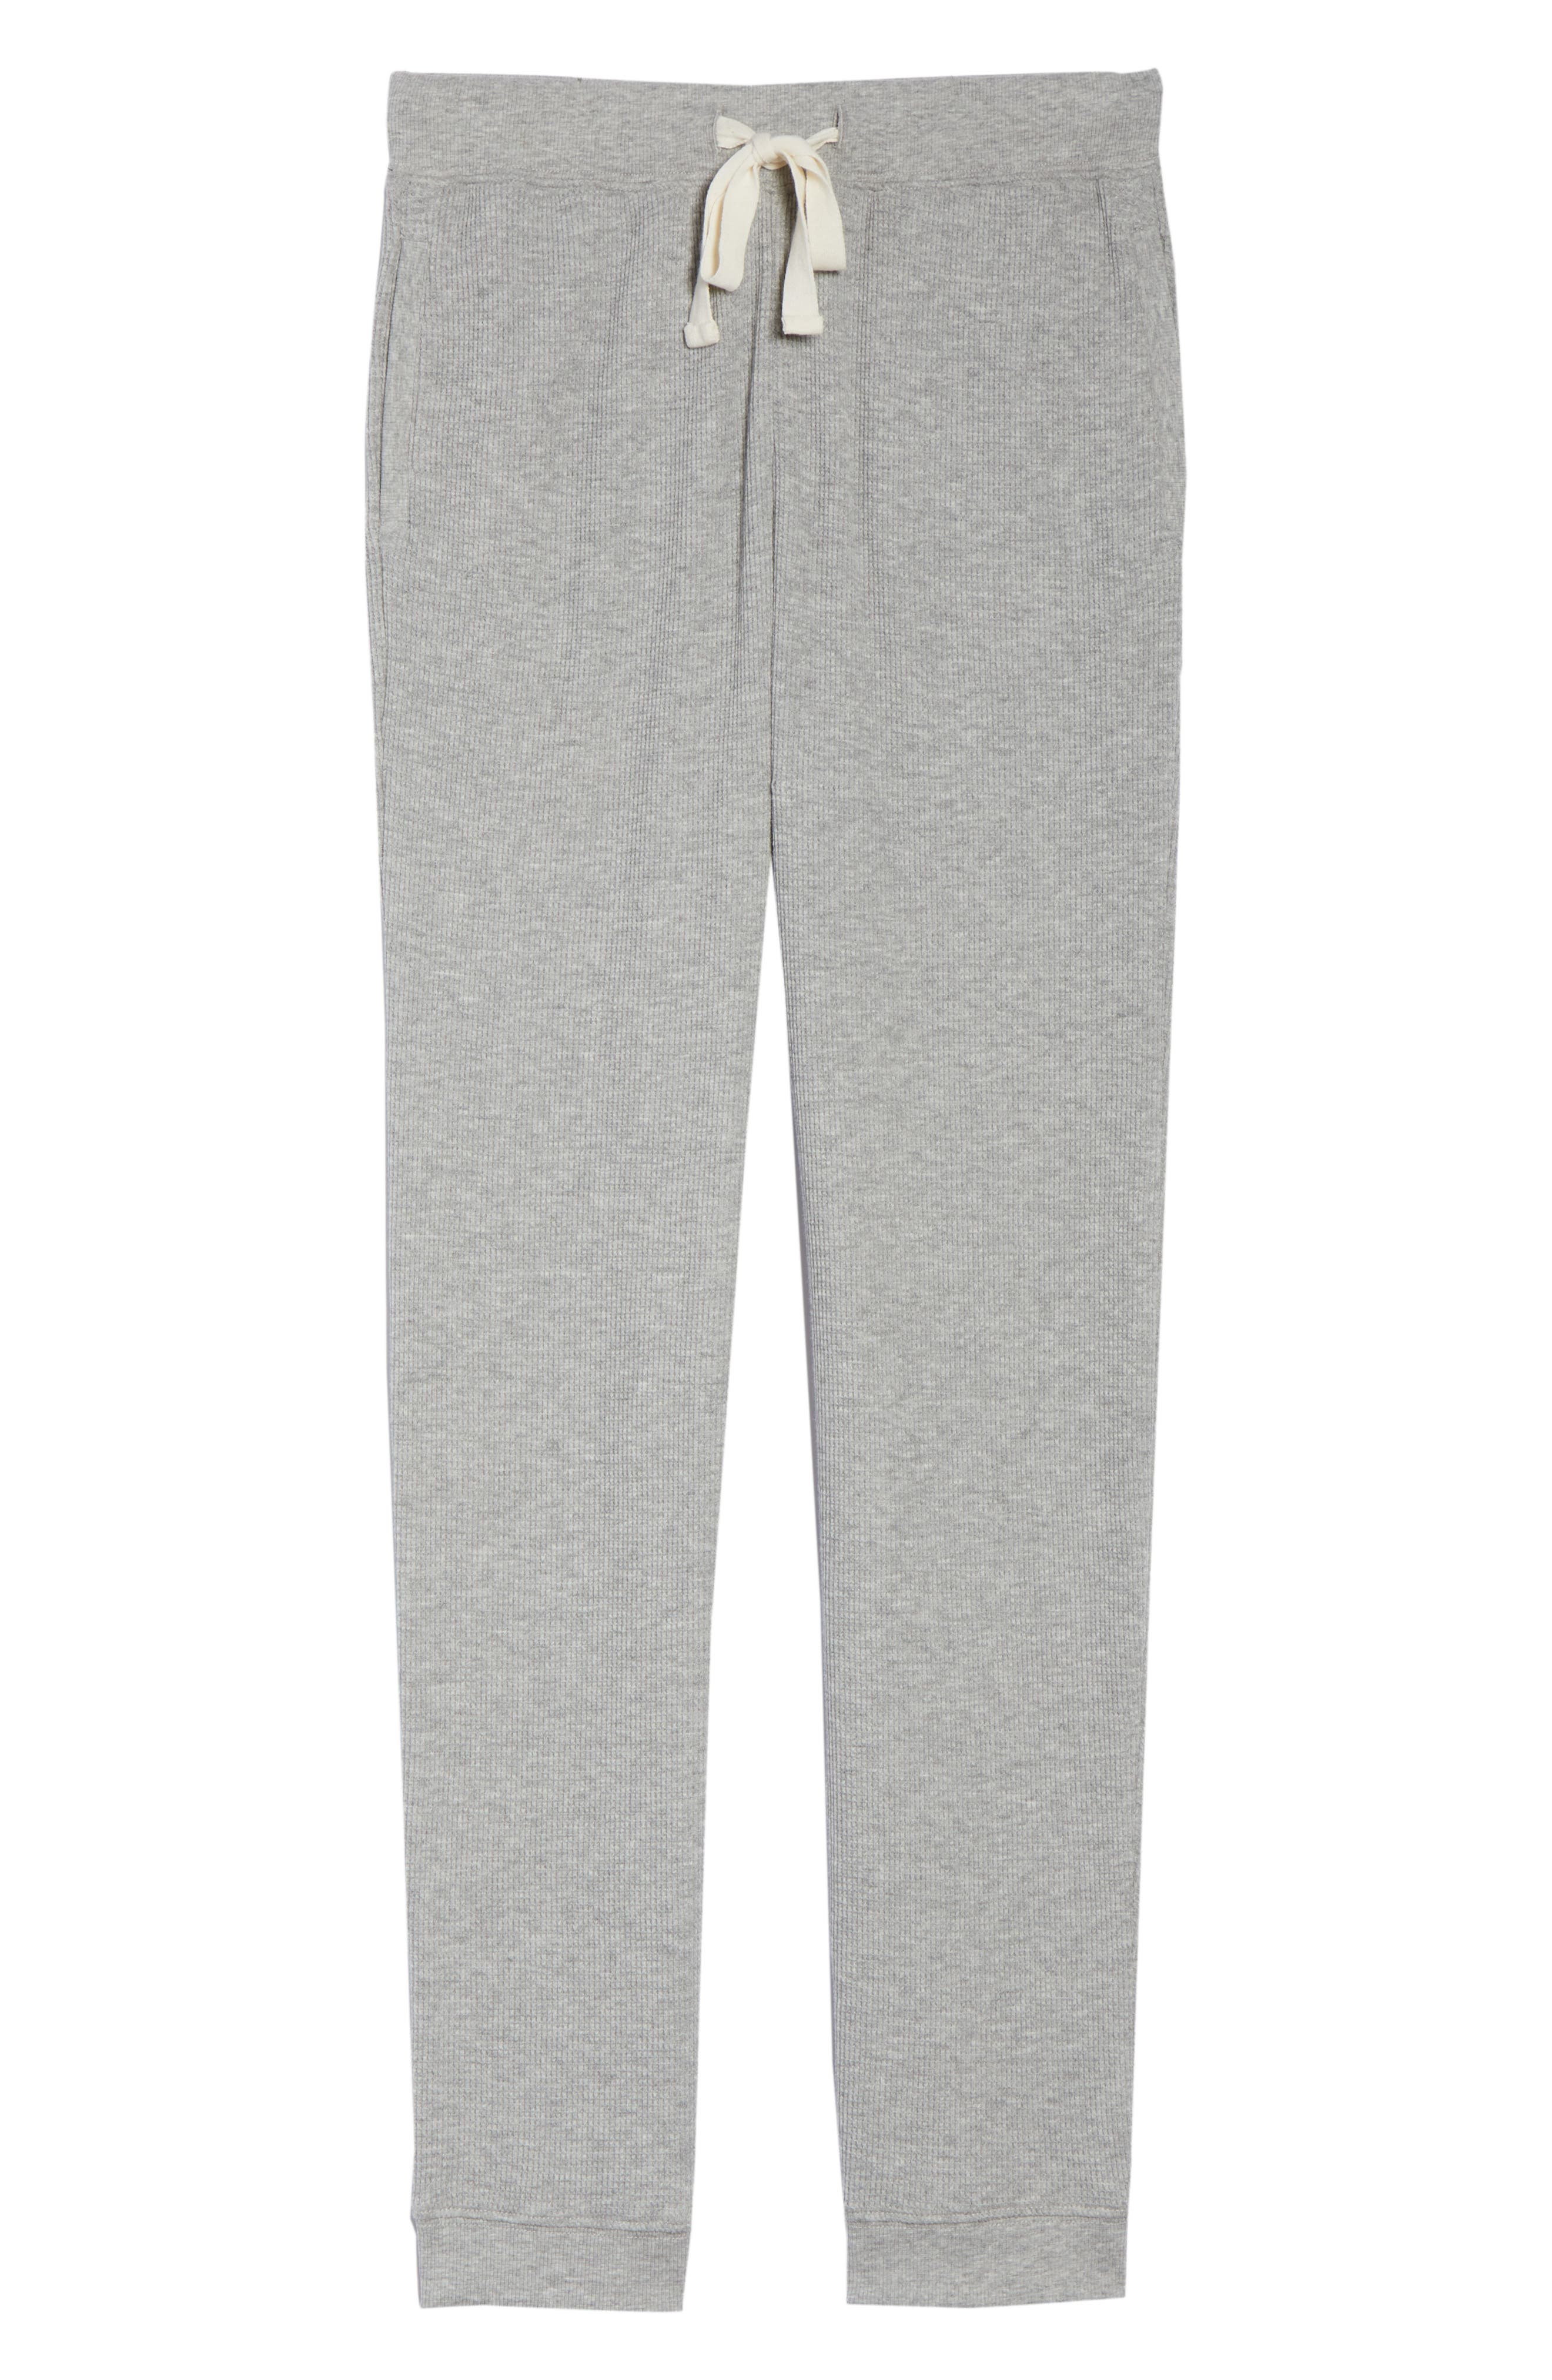 Edie Waffle Knit Lounge Pants,                             Alternate thumbnail 7, color,                             Heather Grey